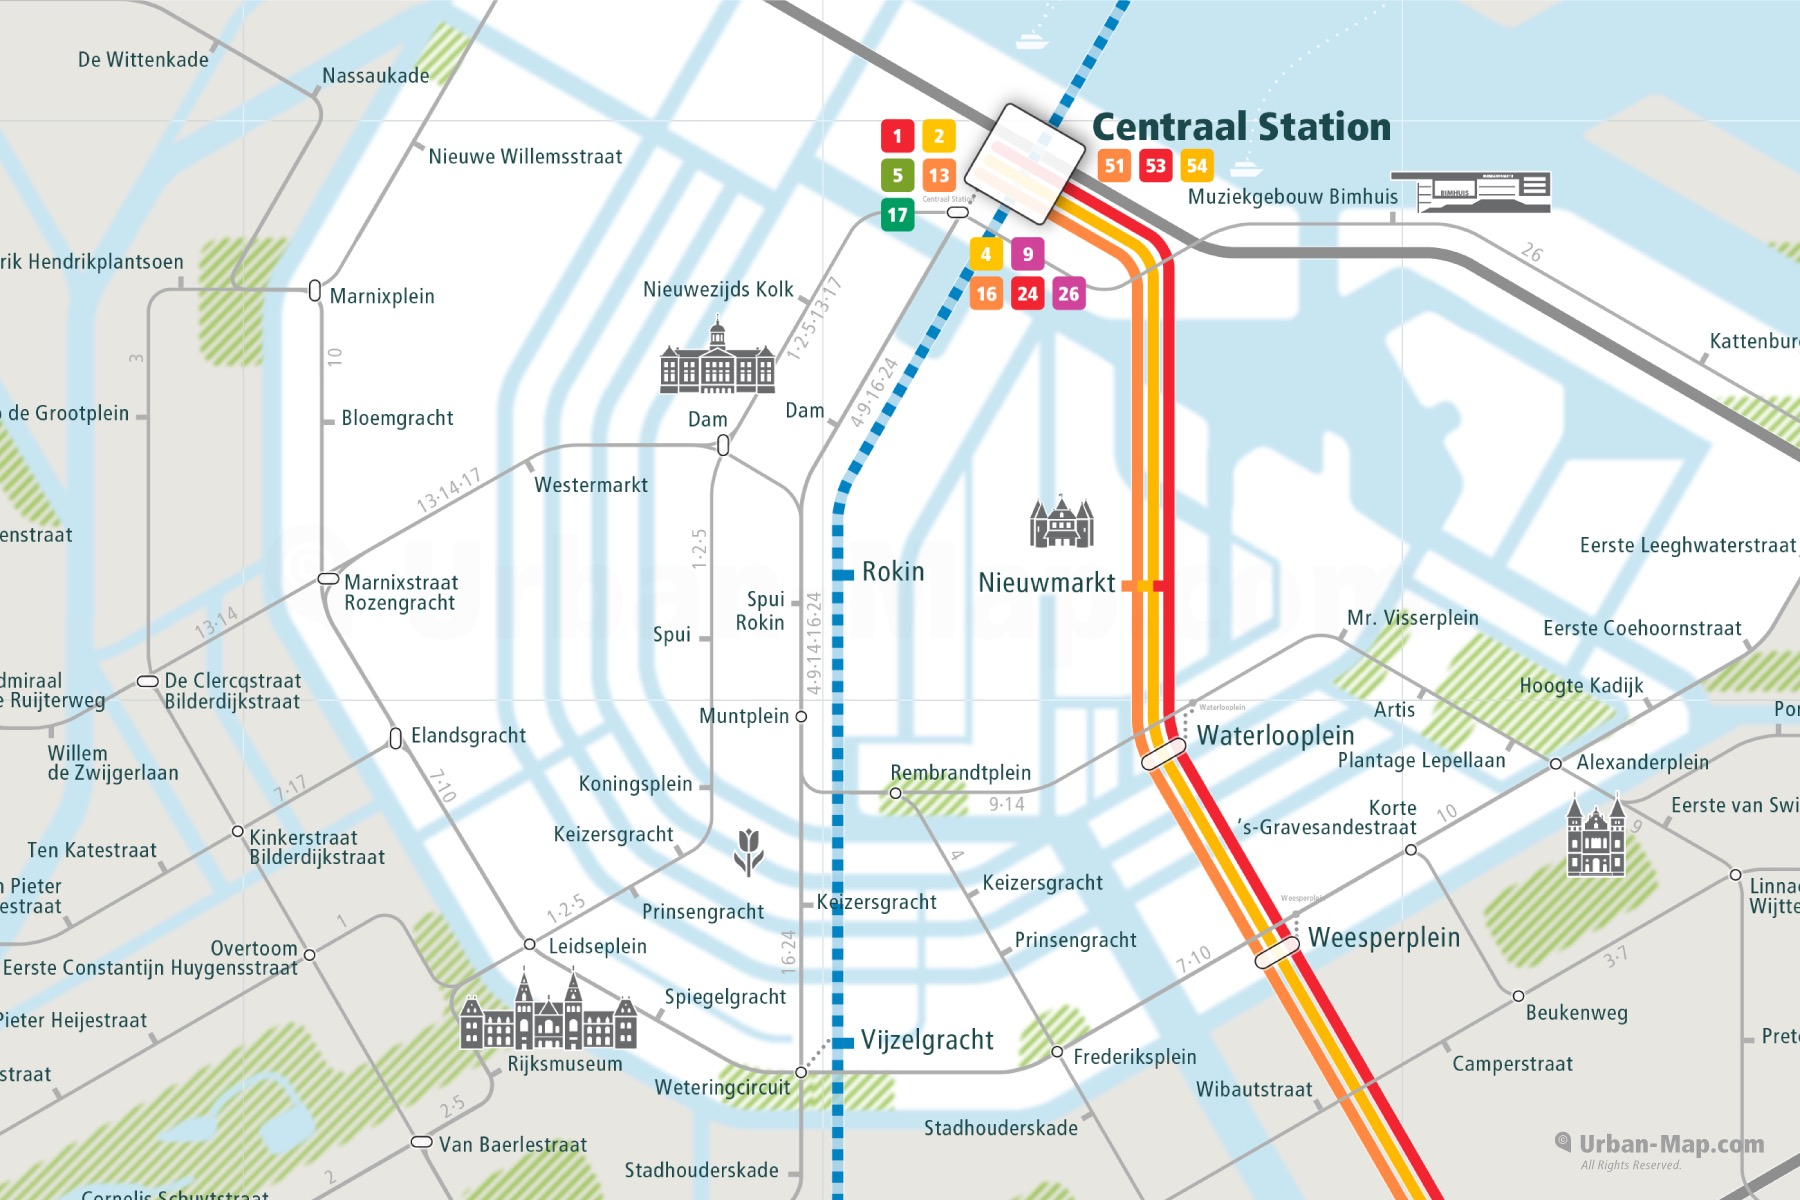 Amsterdam City Rail Map shows the train and public transportation routes of metro and tram - Close-Up